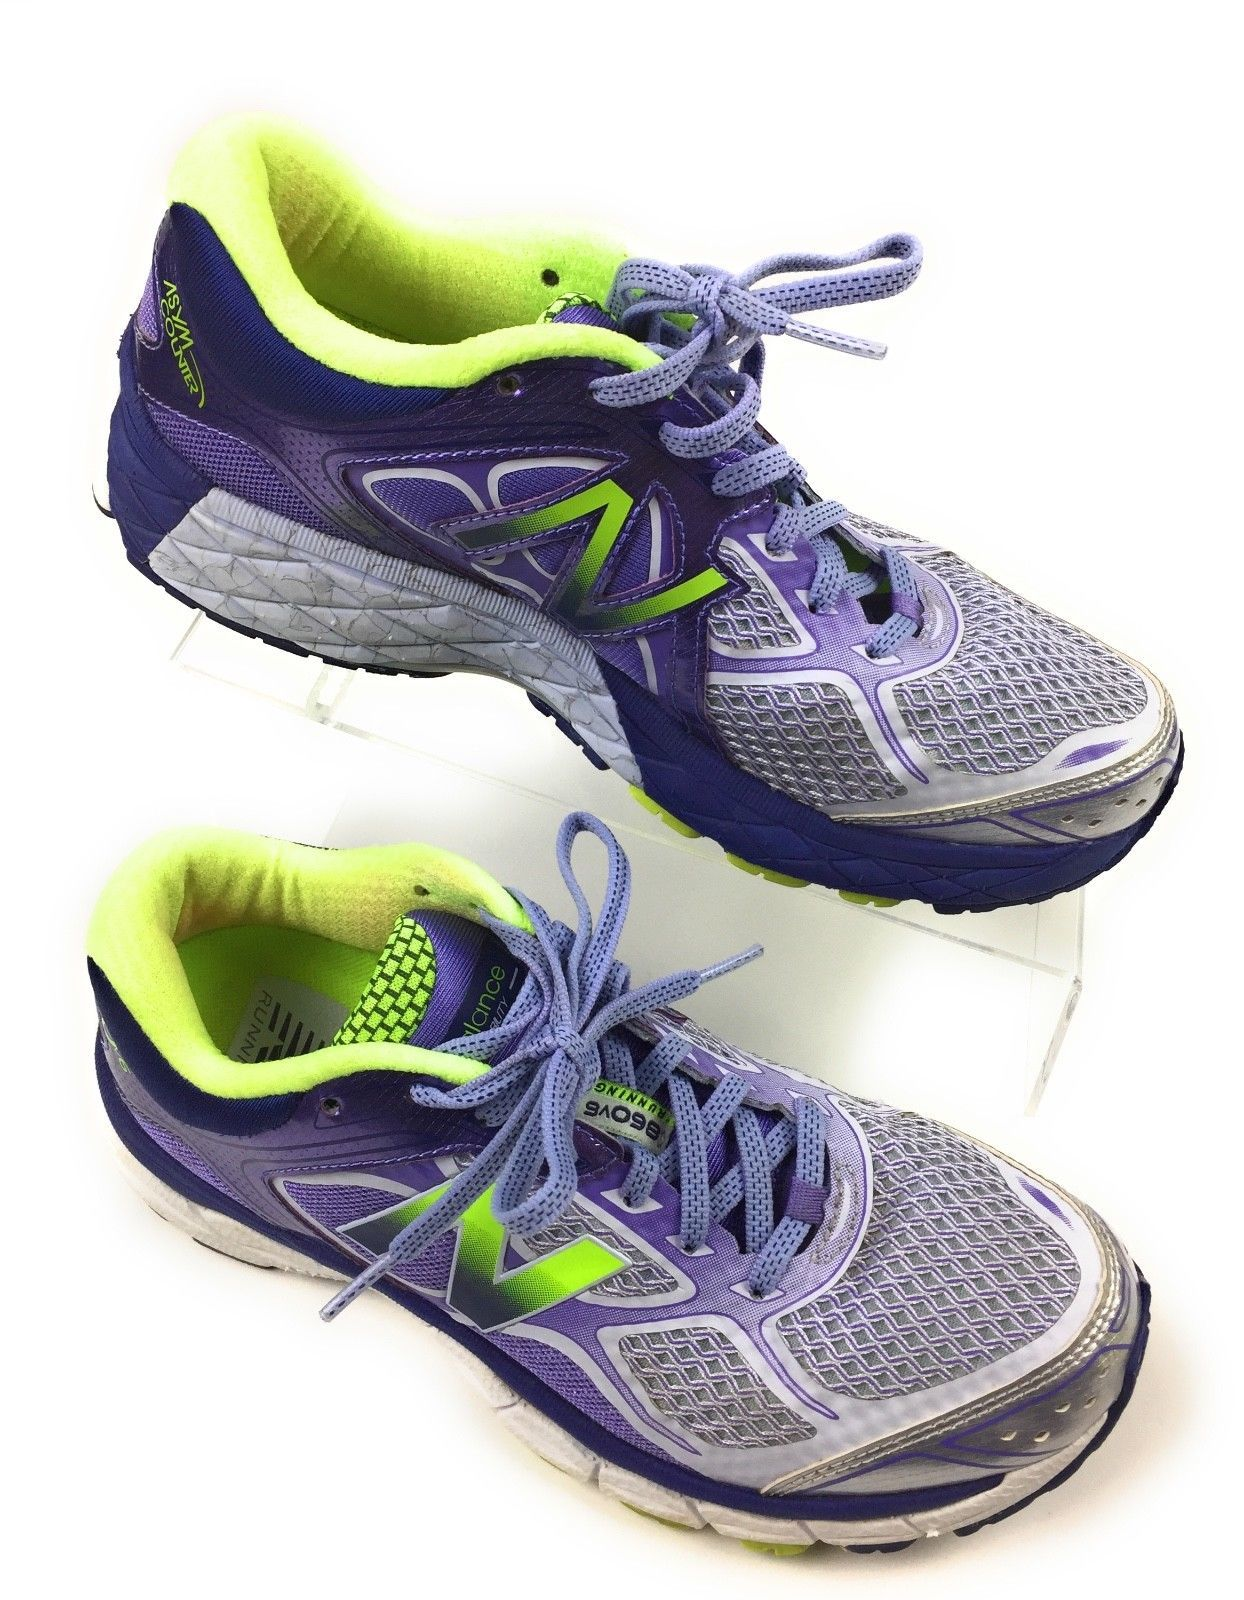 New Balance 860v6 Athletic Running Shoes W860GP8 Purple Green Women's Size 8 US